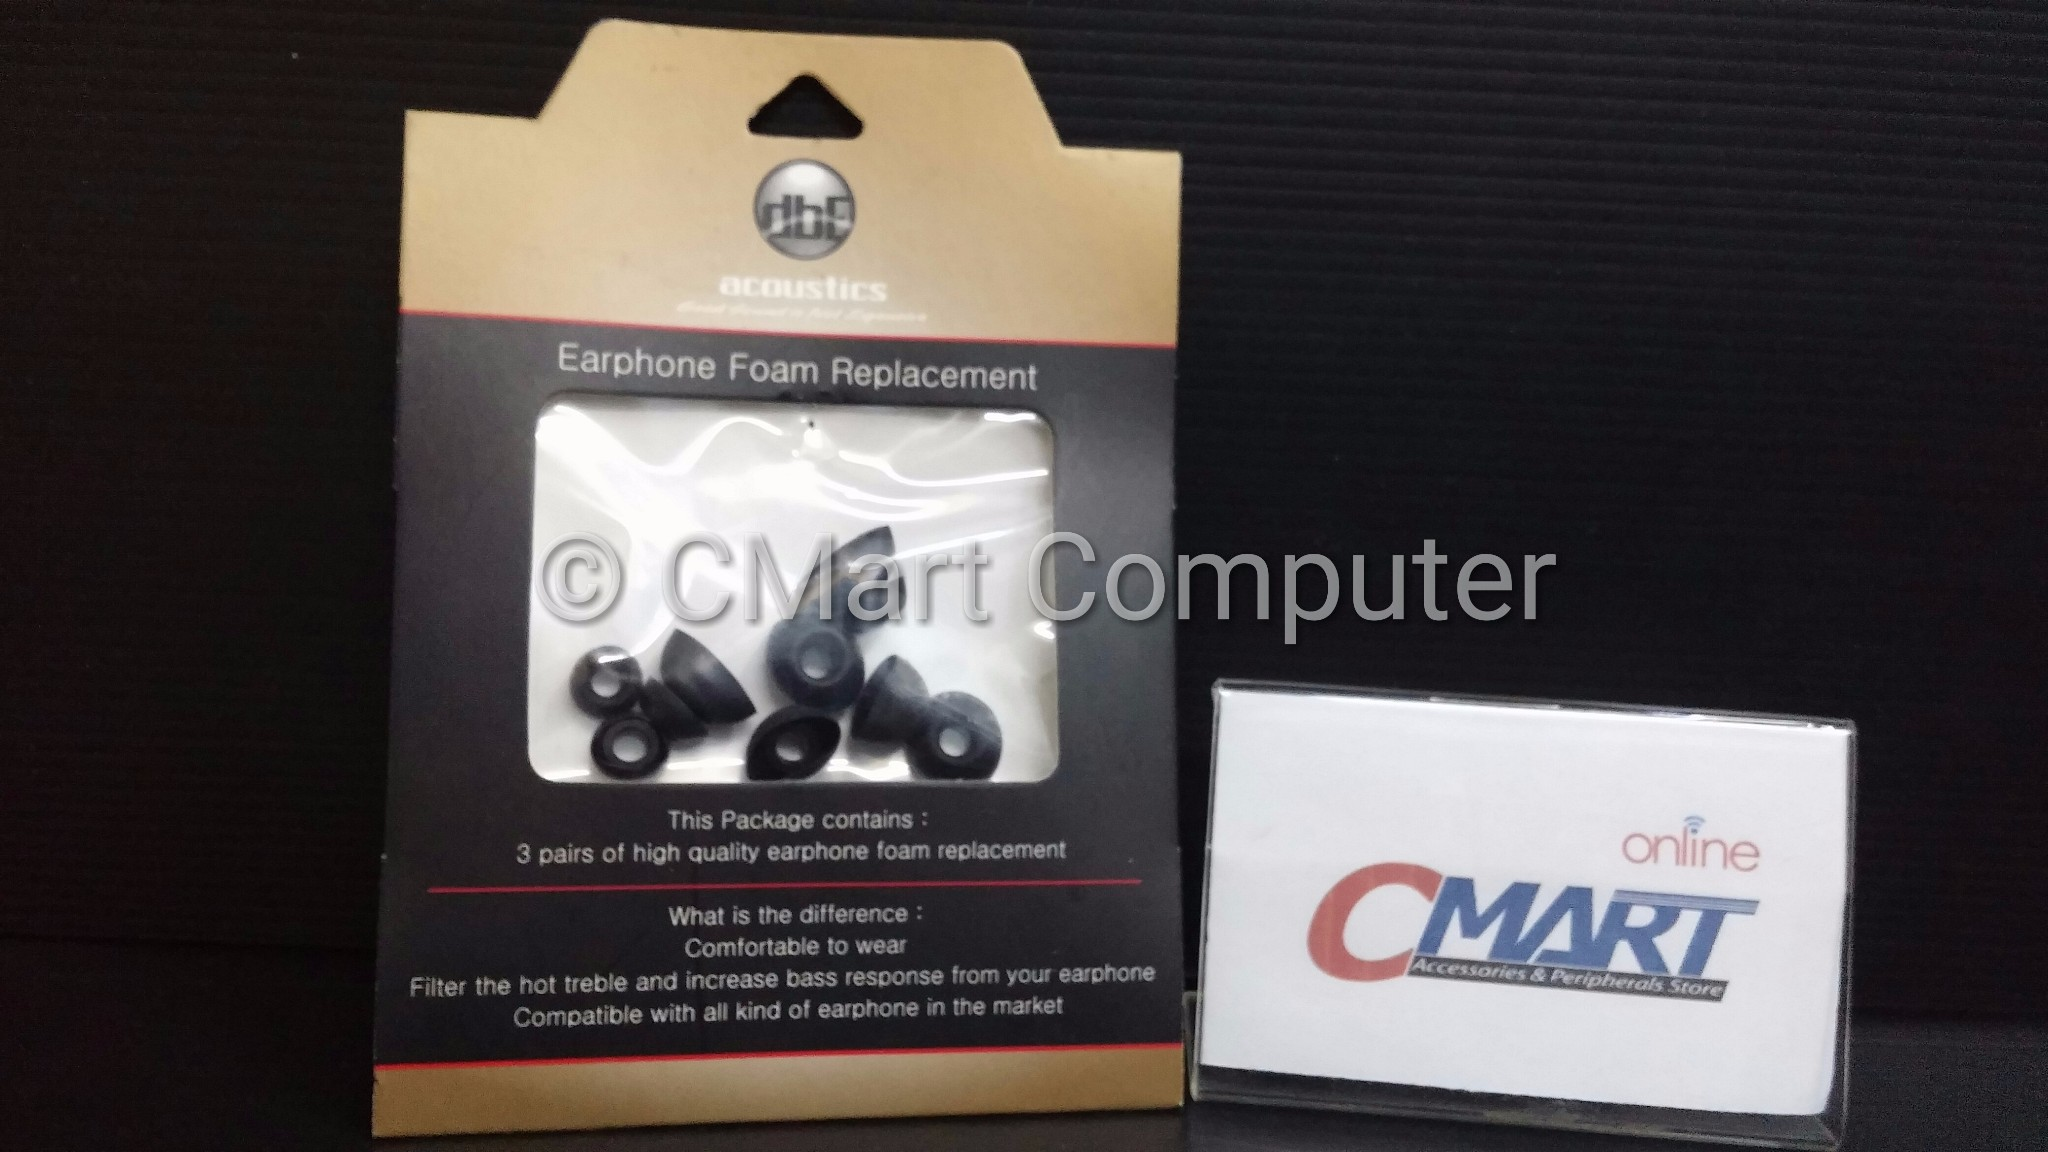 Dbe Acoustics Earbud Foam Spec Dan Daftar Harga Terbaru Indonesia Earphone Ws10 Non Mic Jual Eartips 3 Pairs Of Replacement Cmart Computer Tokopedia